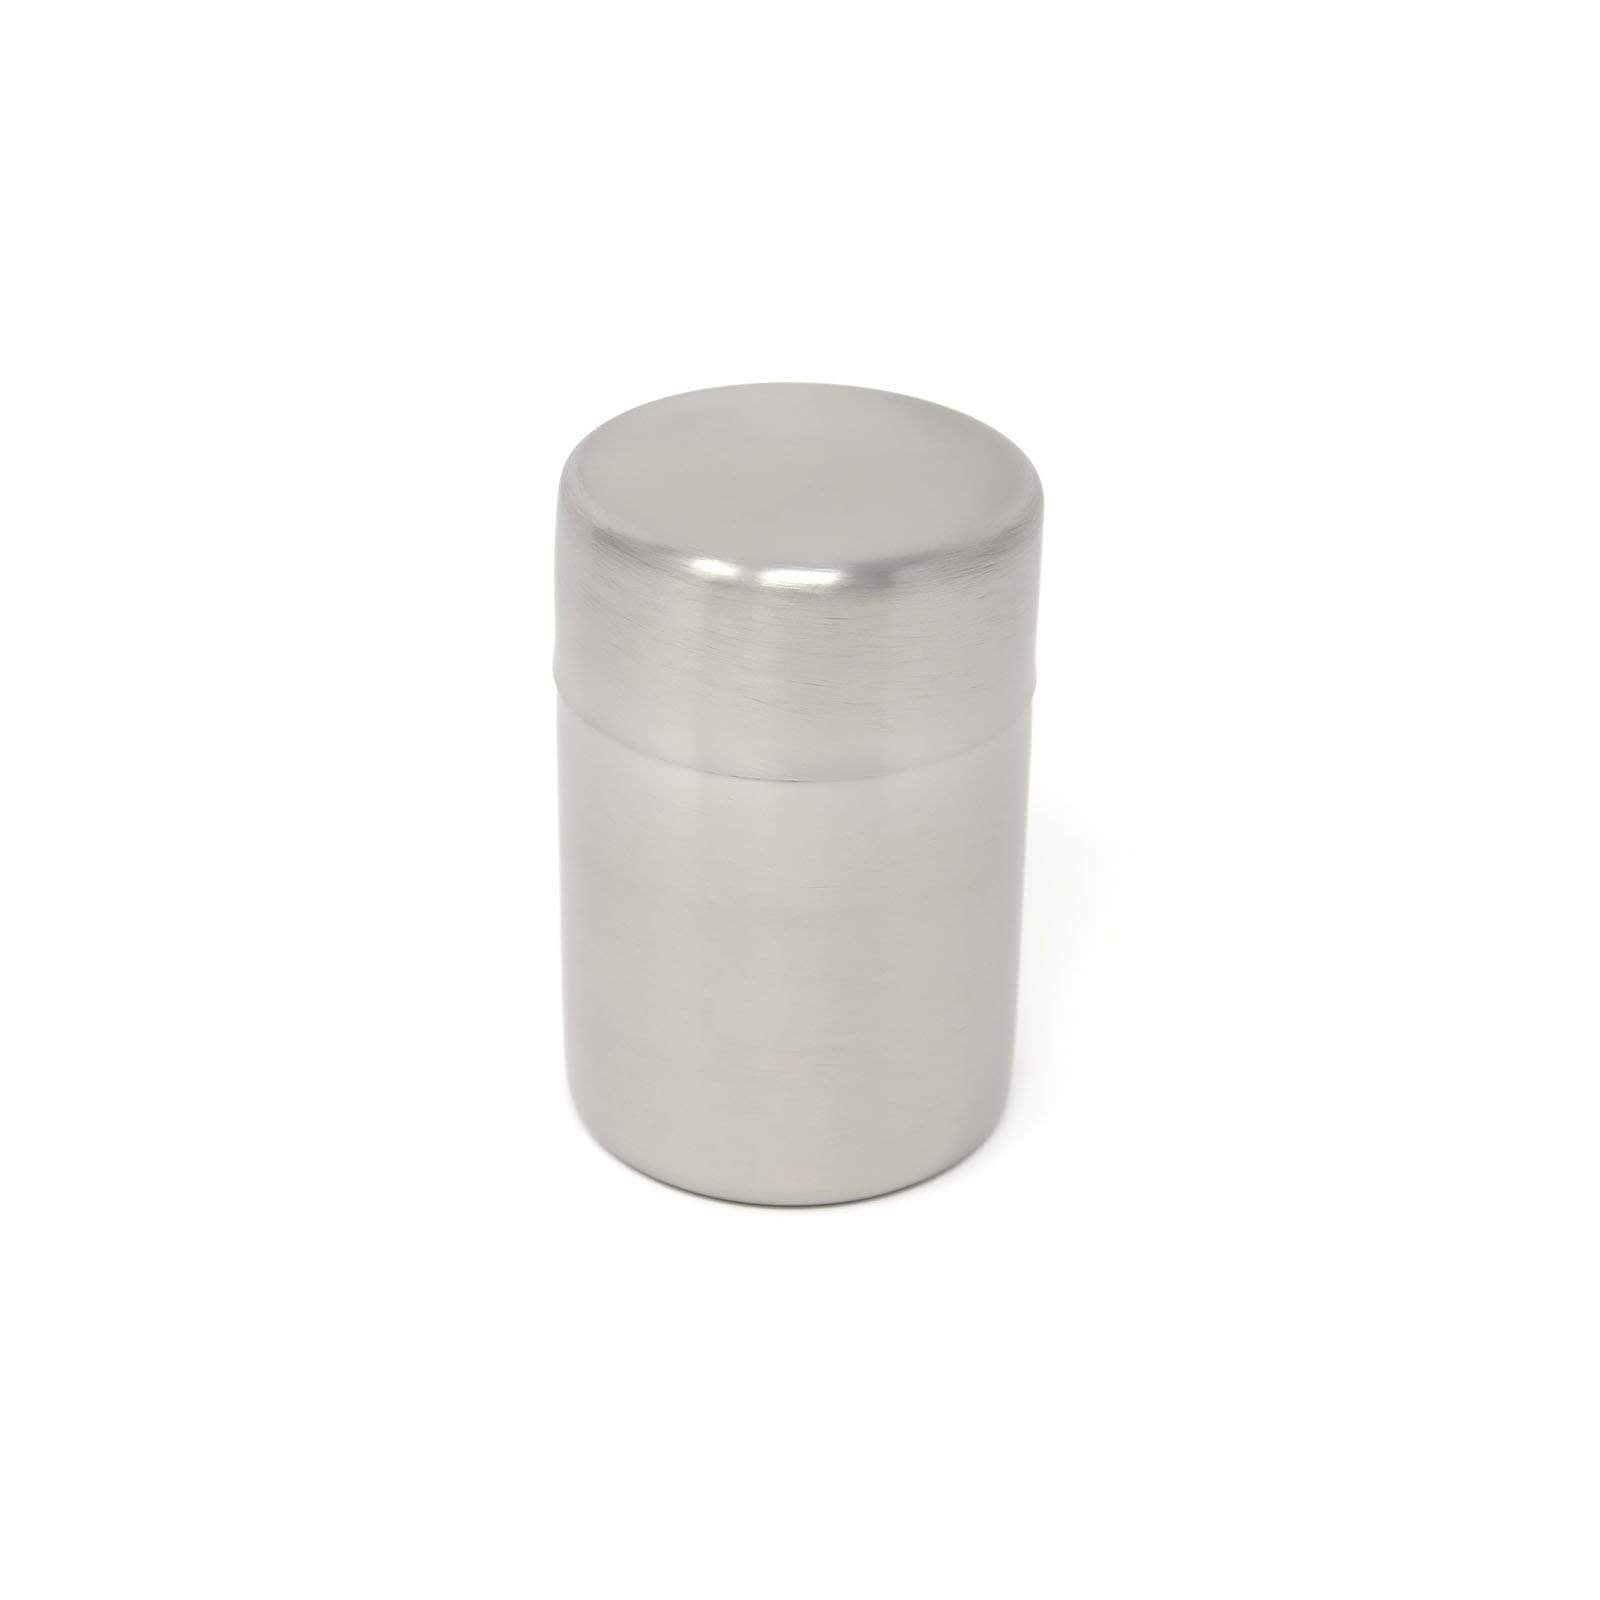 Asahi Stainless Steel Loose Tea Leaf Canister Chazutsu Tea Caddy 200ml Canisters